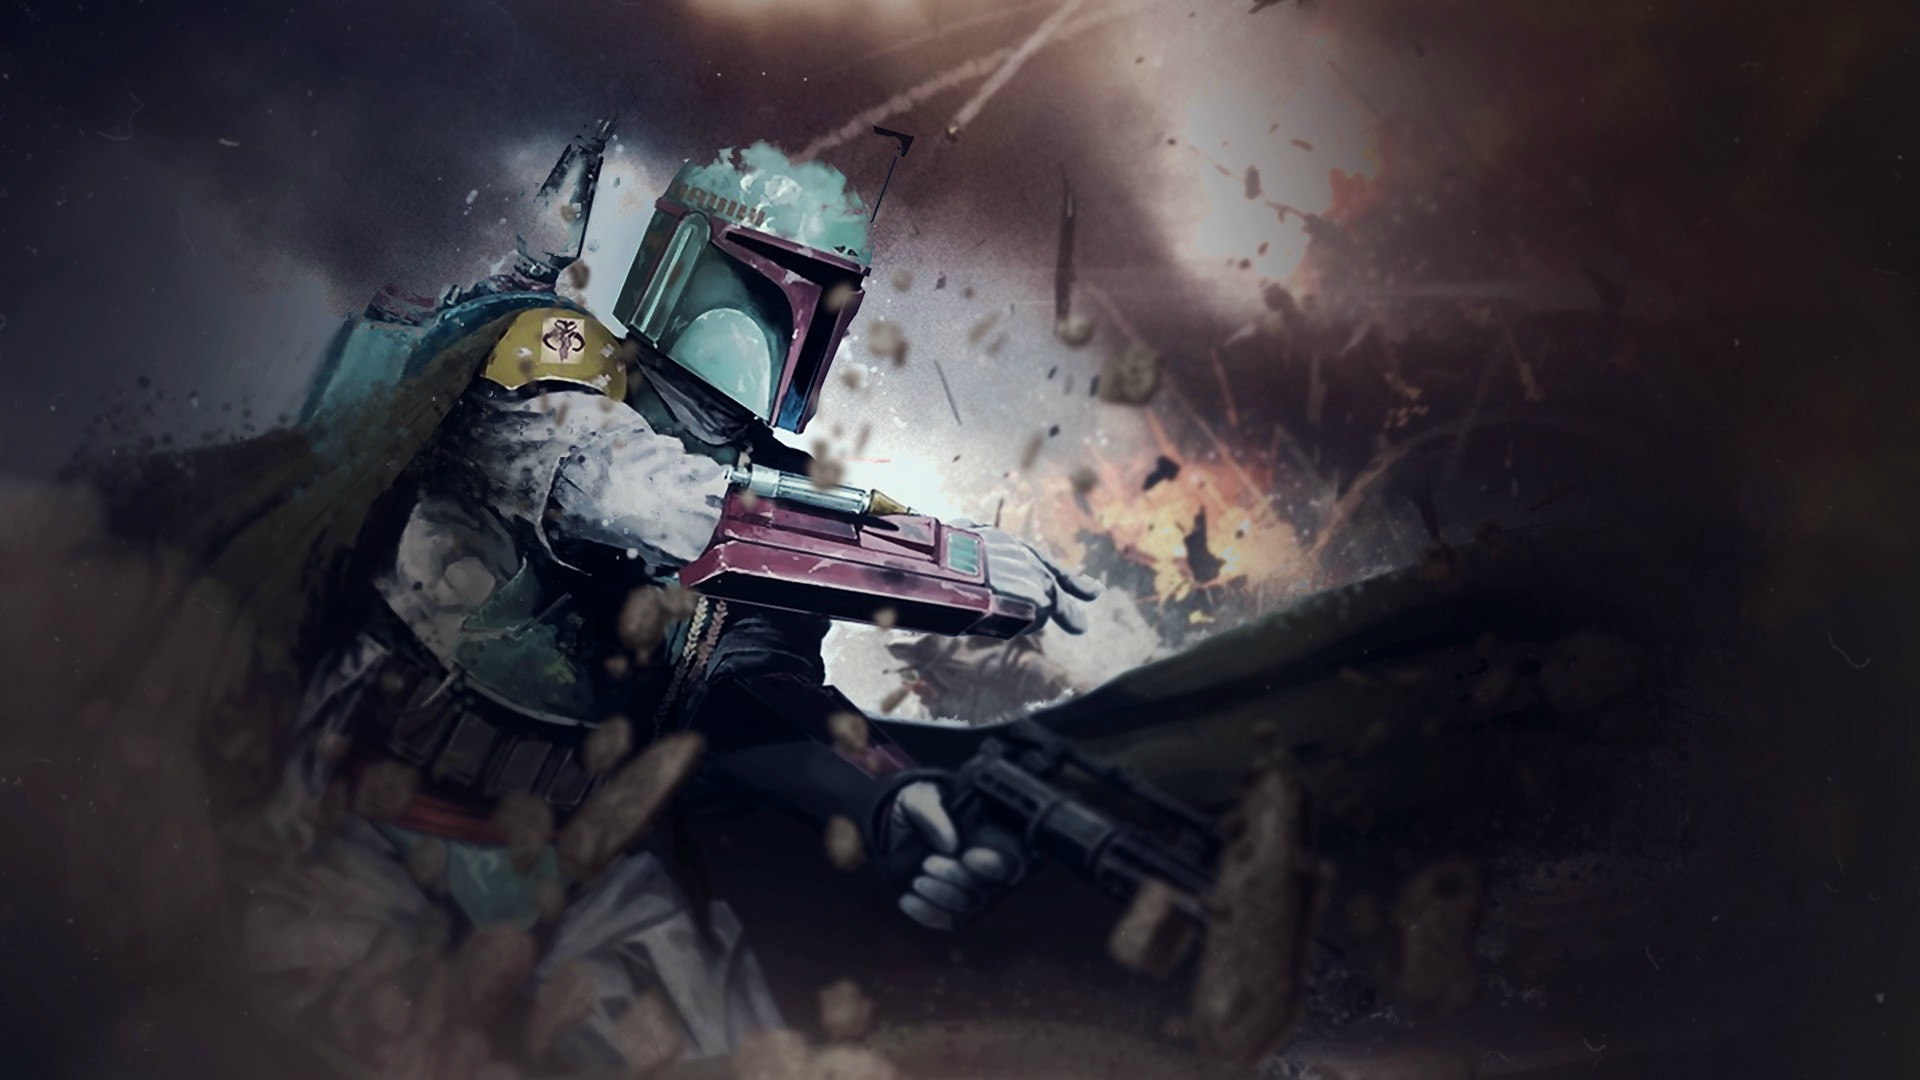 Star Wars Boba Fett Weapon Cape Debris Wallpapers HD 1920x1080